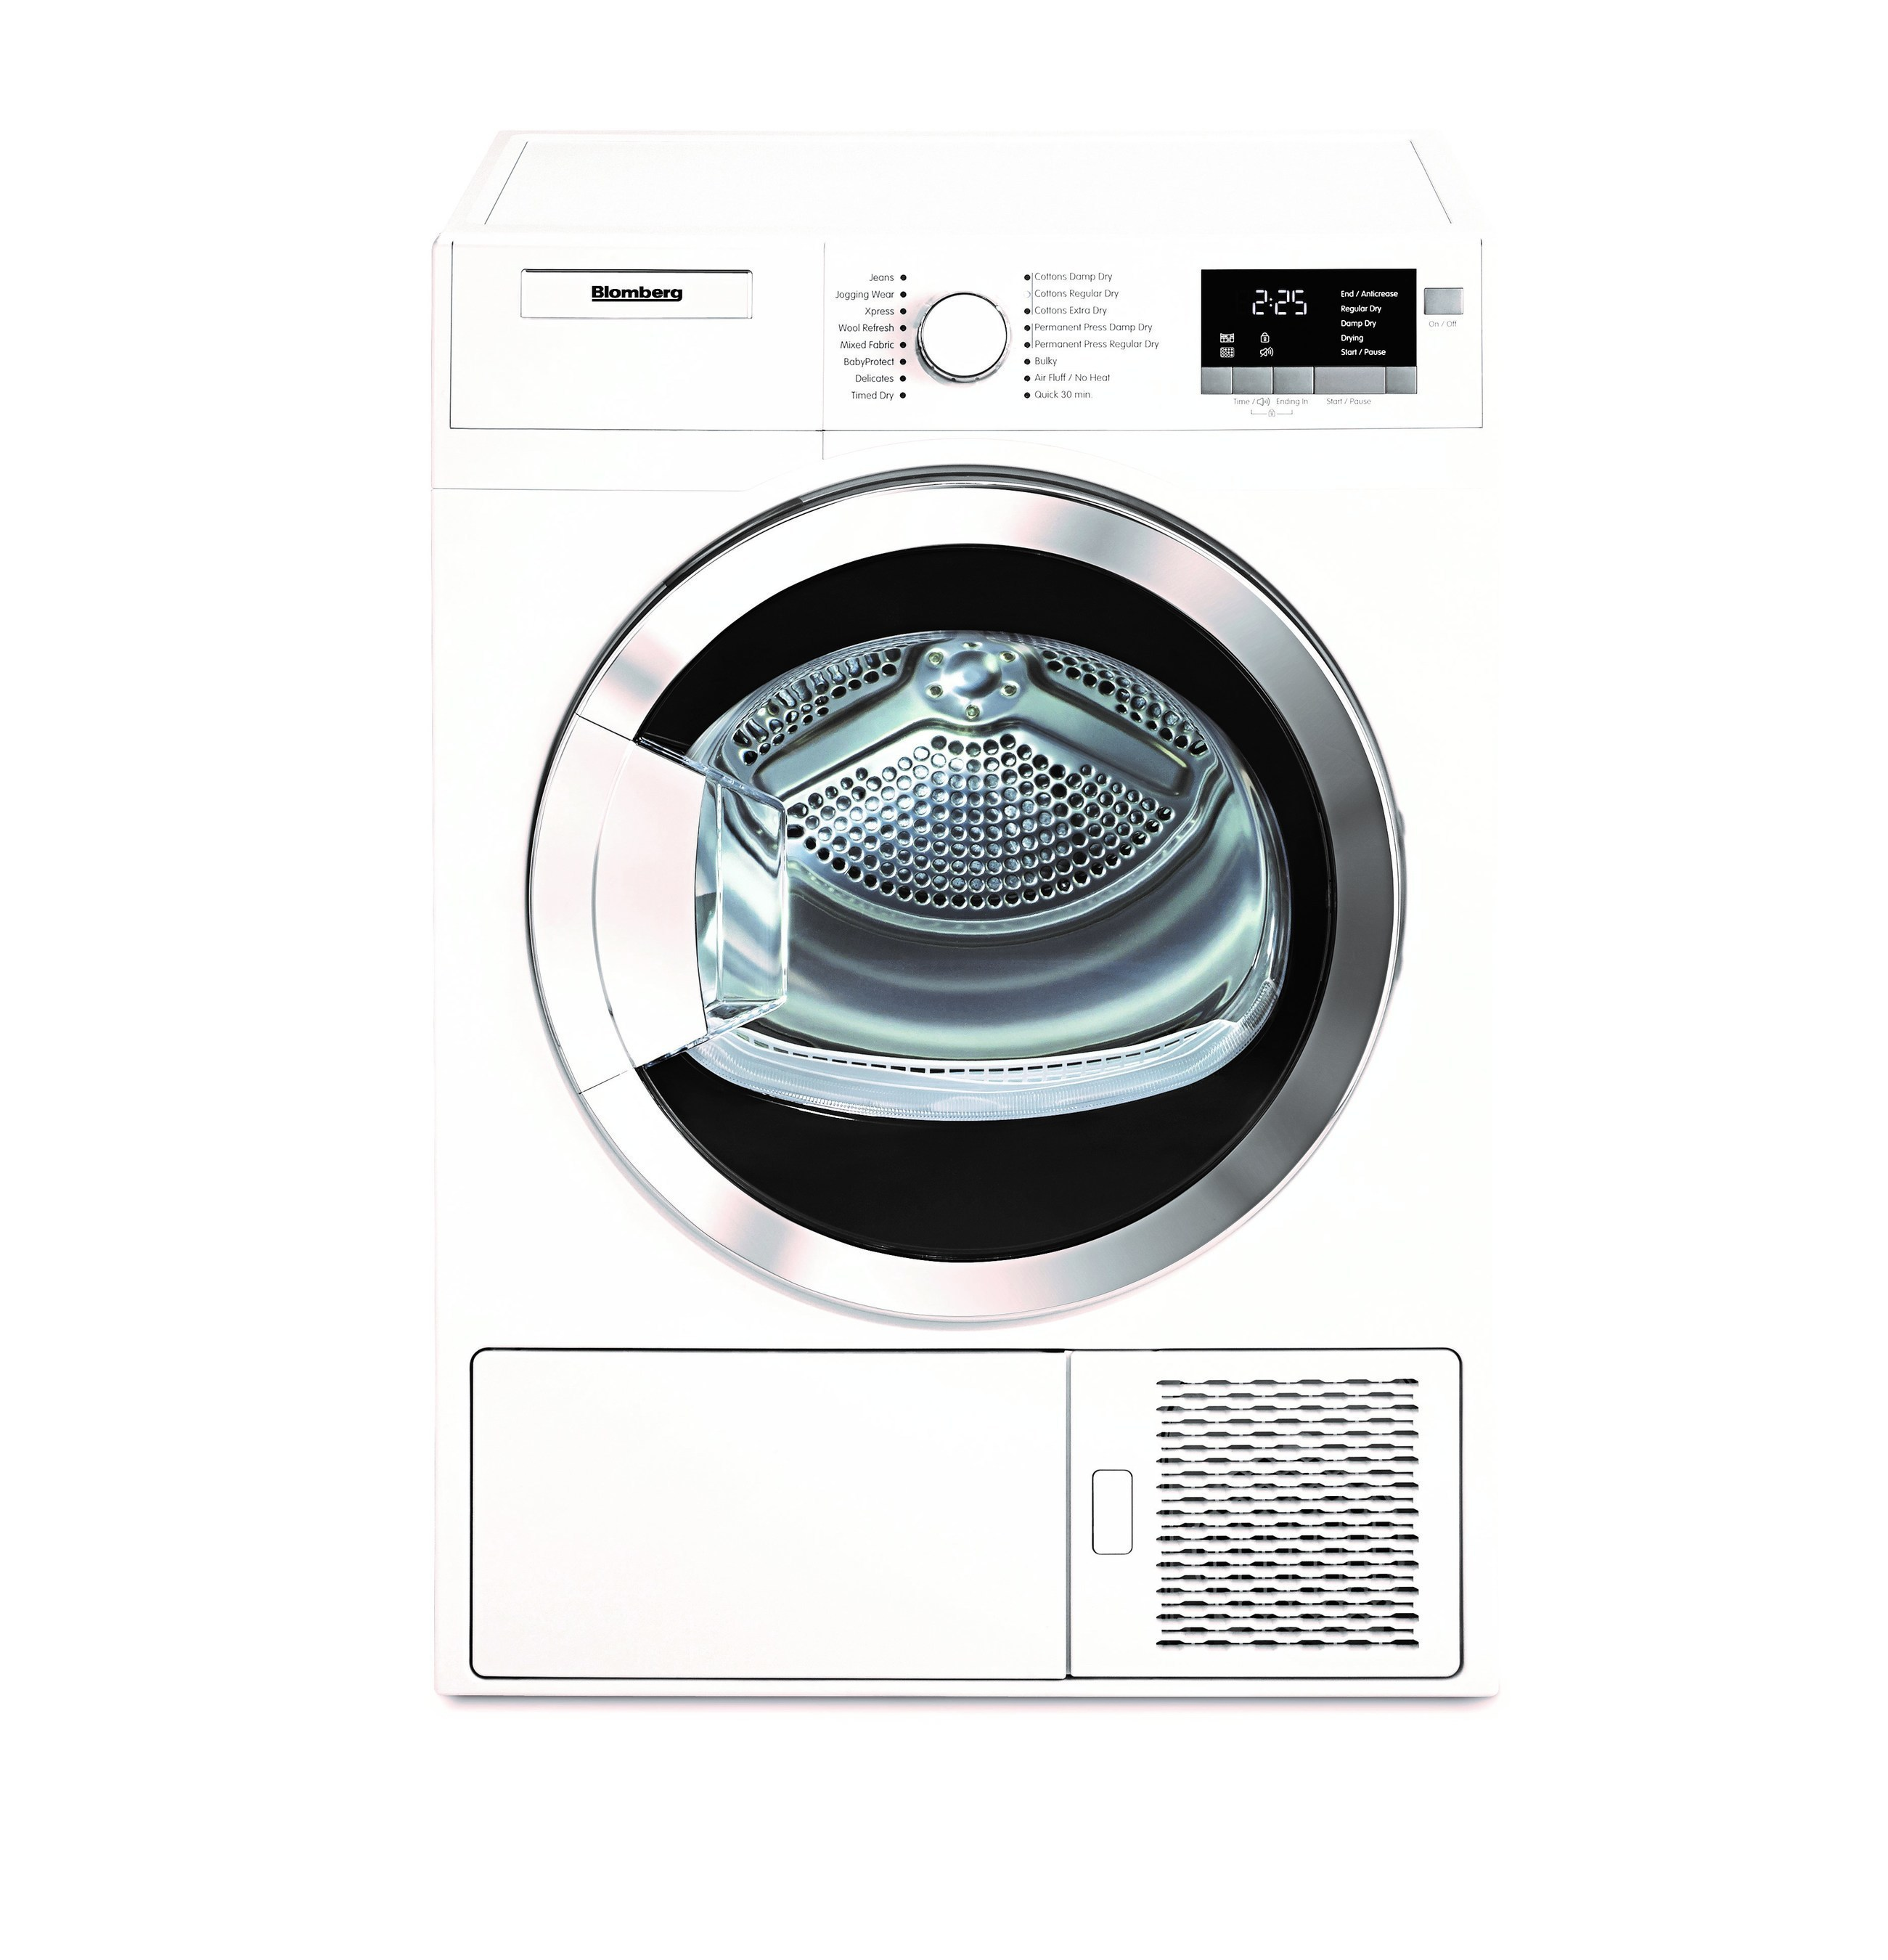 Blomberg's Ventless Heat Pump Dryer is the most energy-efficient in its class, and uses 50 percent less energy and 40 percent lower circulating air temperature than compact air-vented dryers.